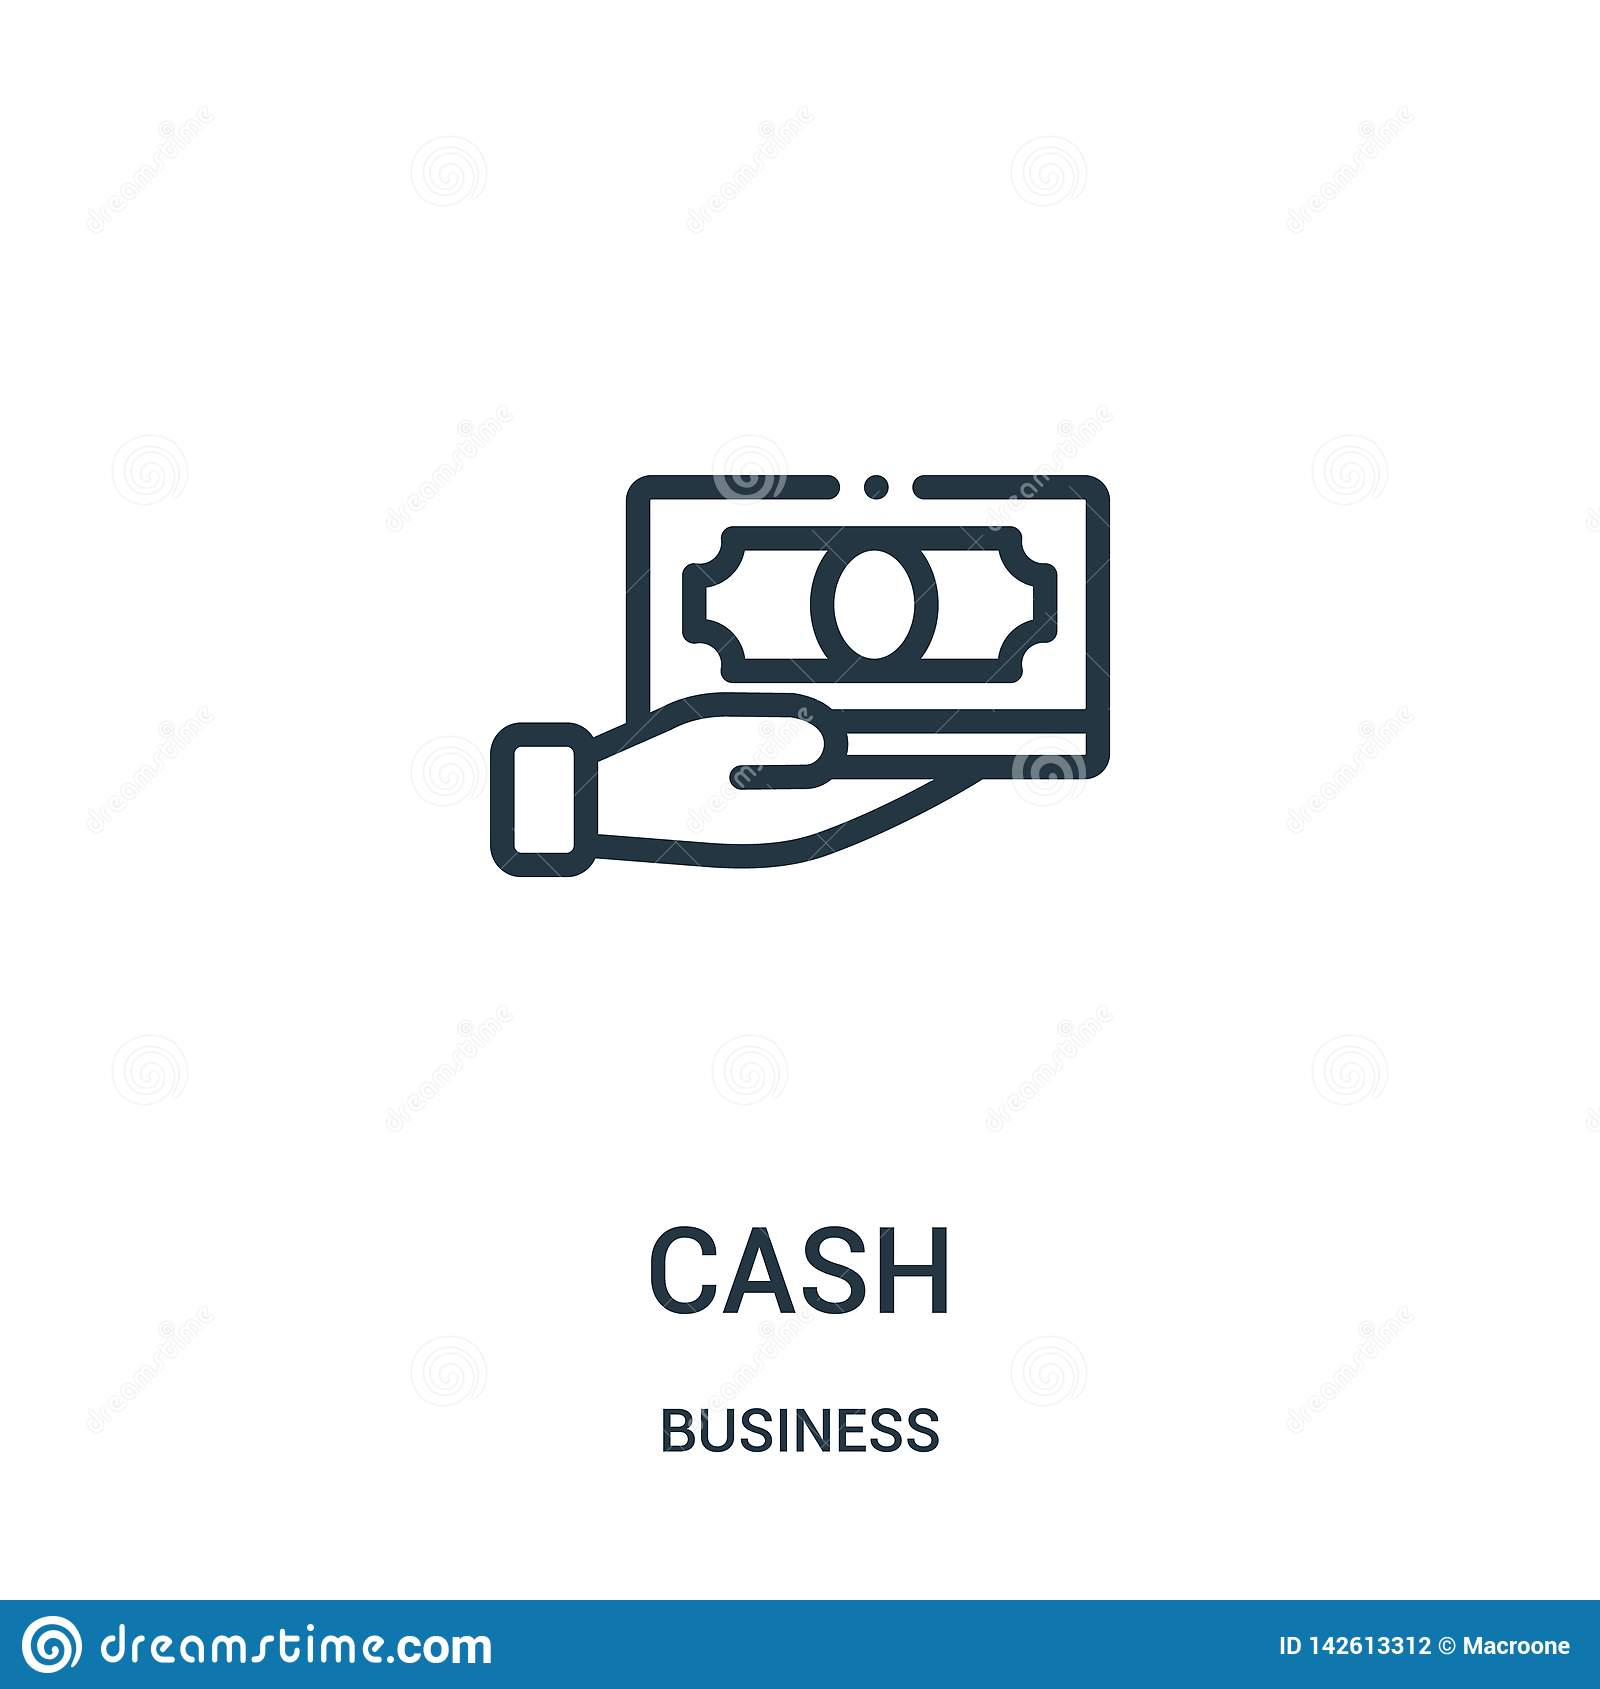 cash icon vector from business collection. Thin line cash outline icon vector illustration. Linear symbol